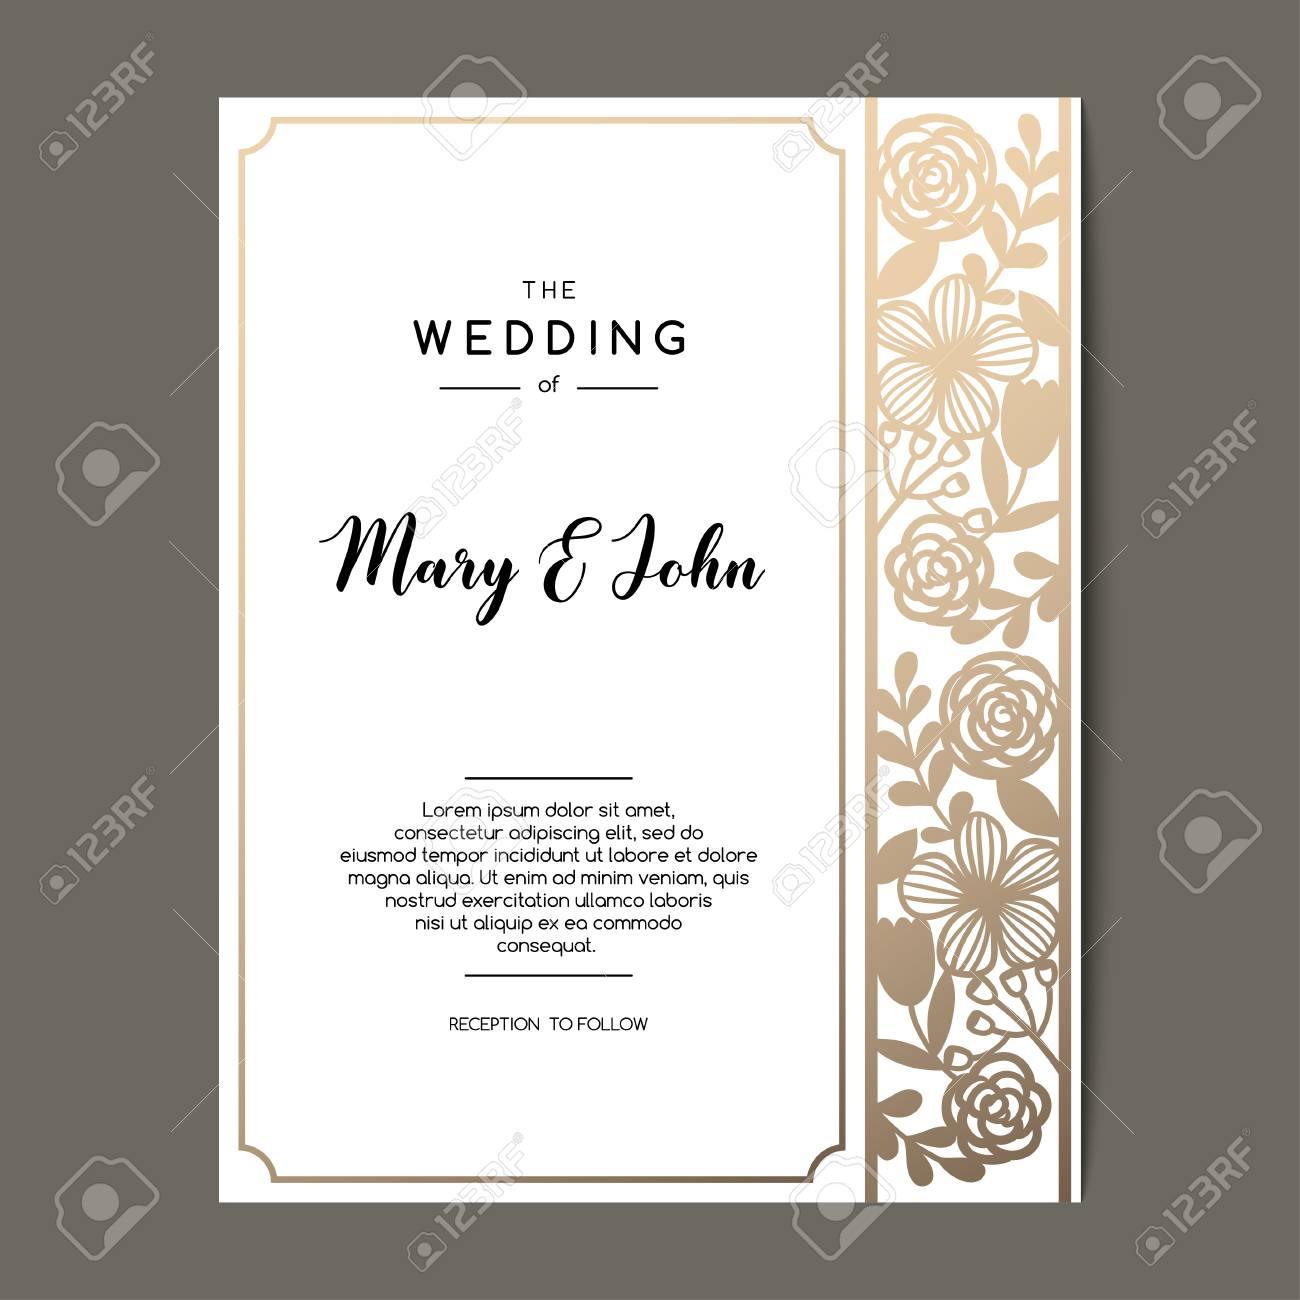 Elegant Wedding Invitation Background With Floral Ornament Vector